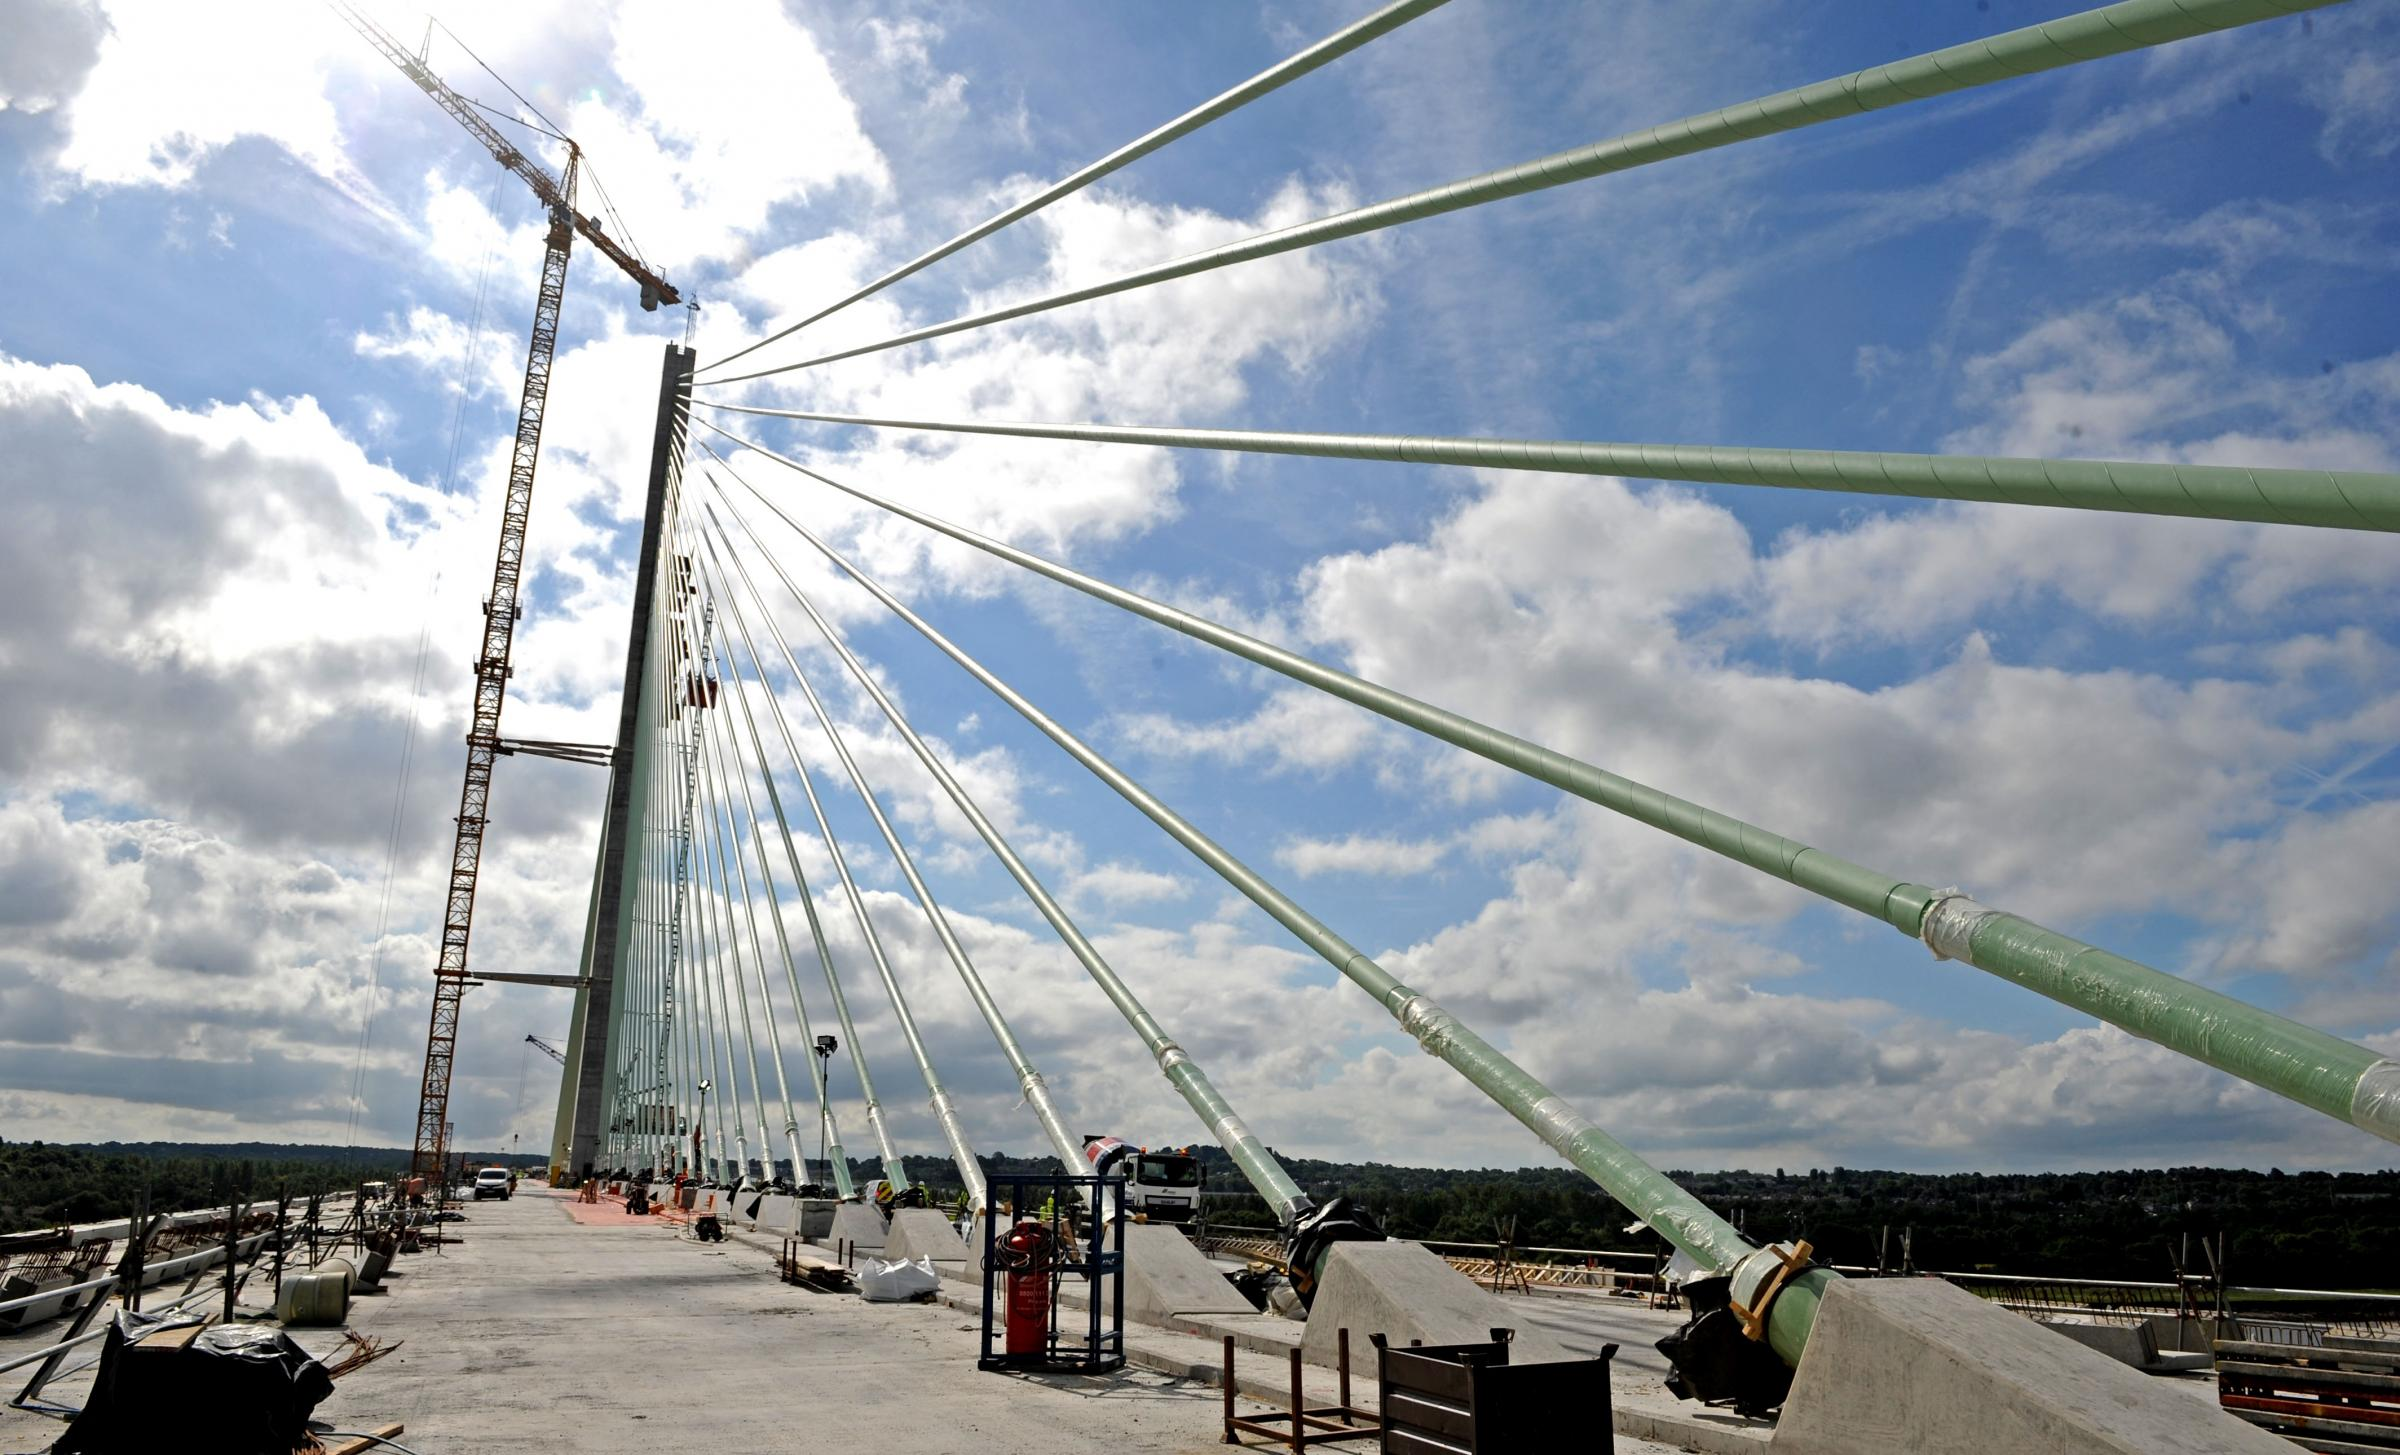 Mersey Gateway could open in two weeks if the weather allows final work to be completed